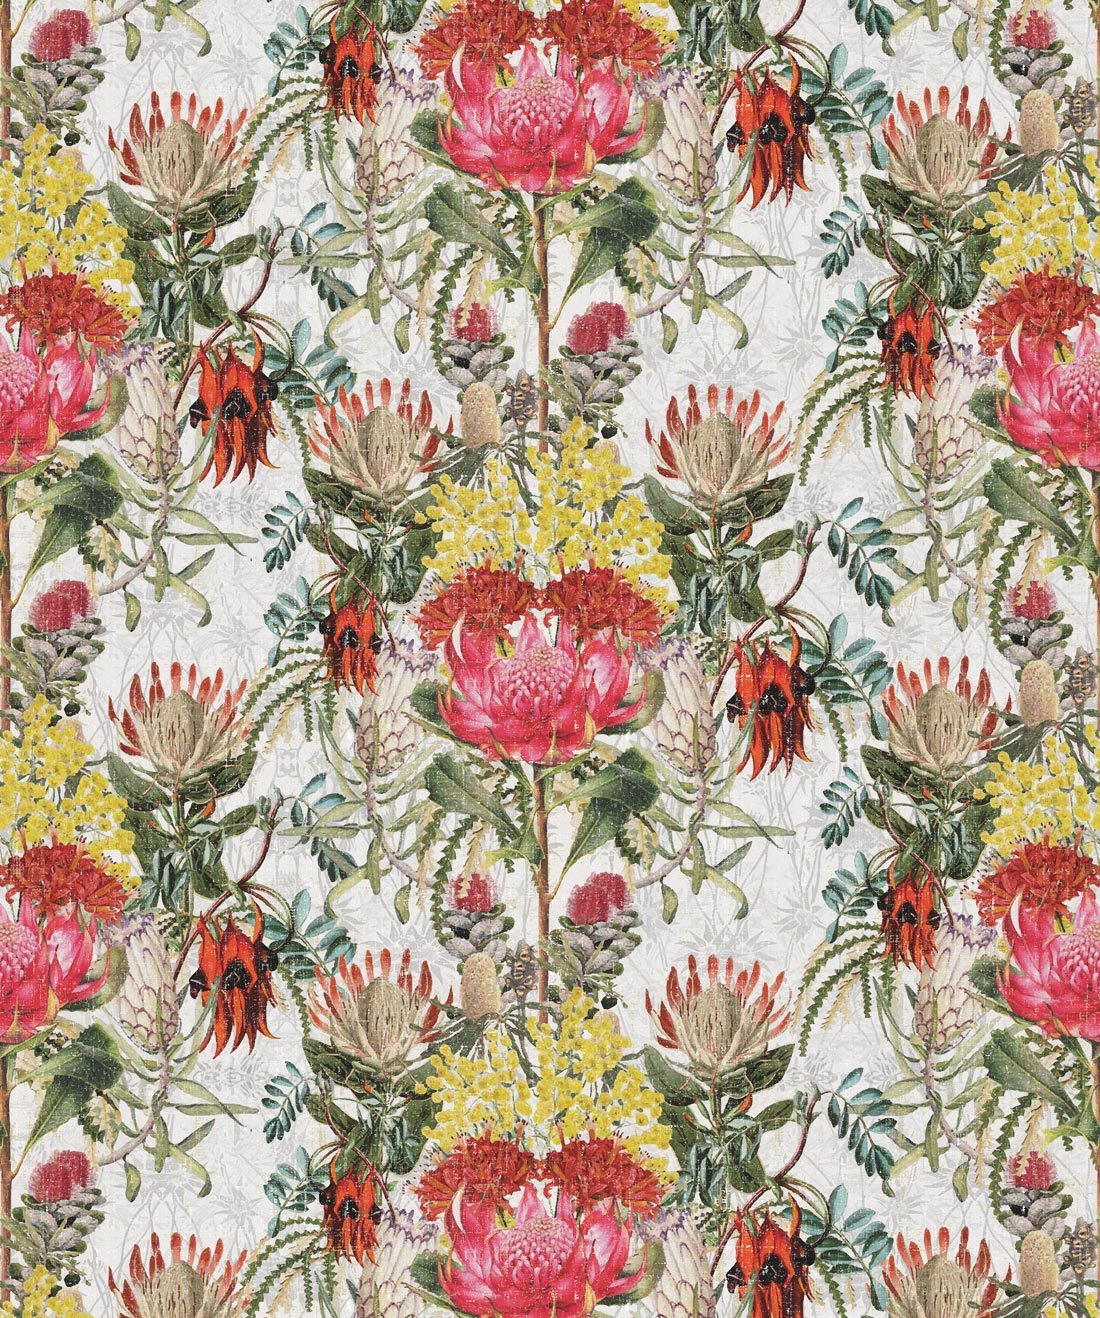 Simcox Wildflowers Wallpaper